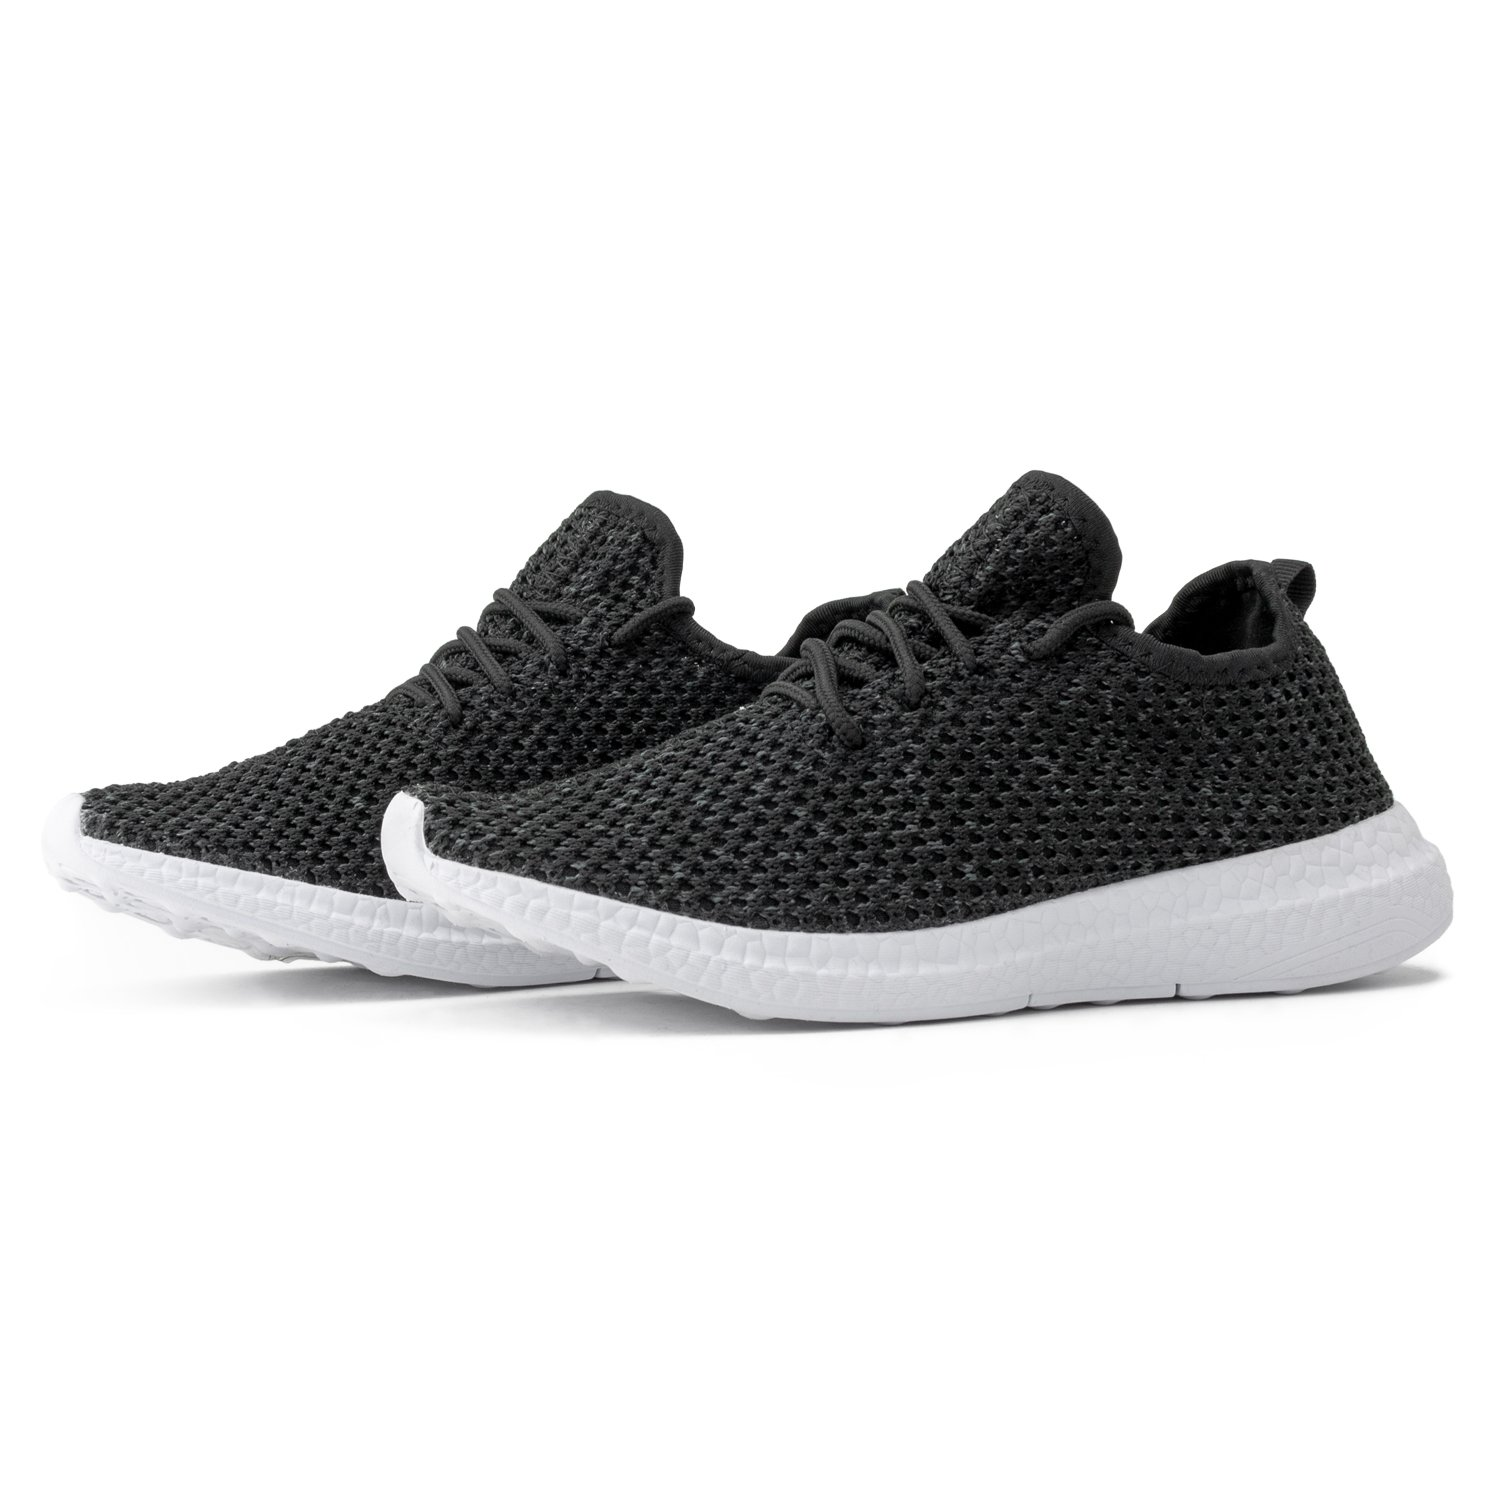 RF ROOM OF FASHION Women's Flyknit Lace Up Fashion Sneaker - Light Weight Slip On Walking Flats - Low Top Casual Sneakers Black (9)